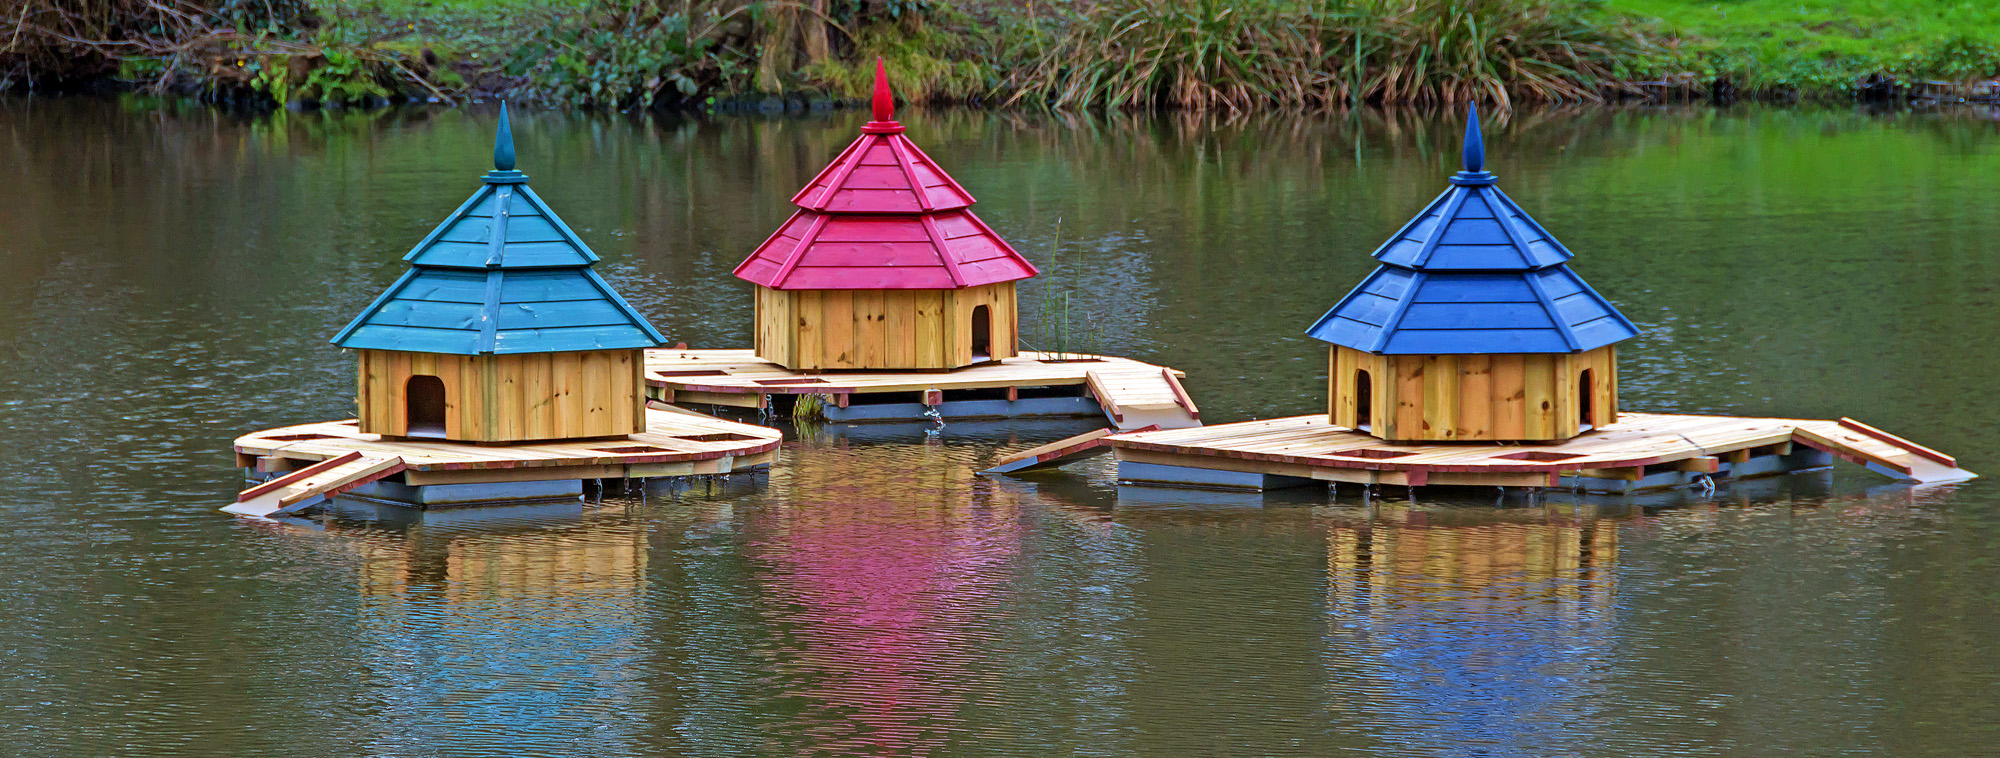 Duck Houses on Newent Lake